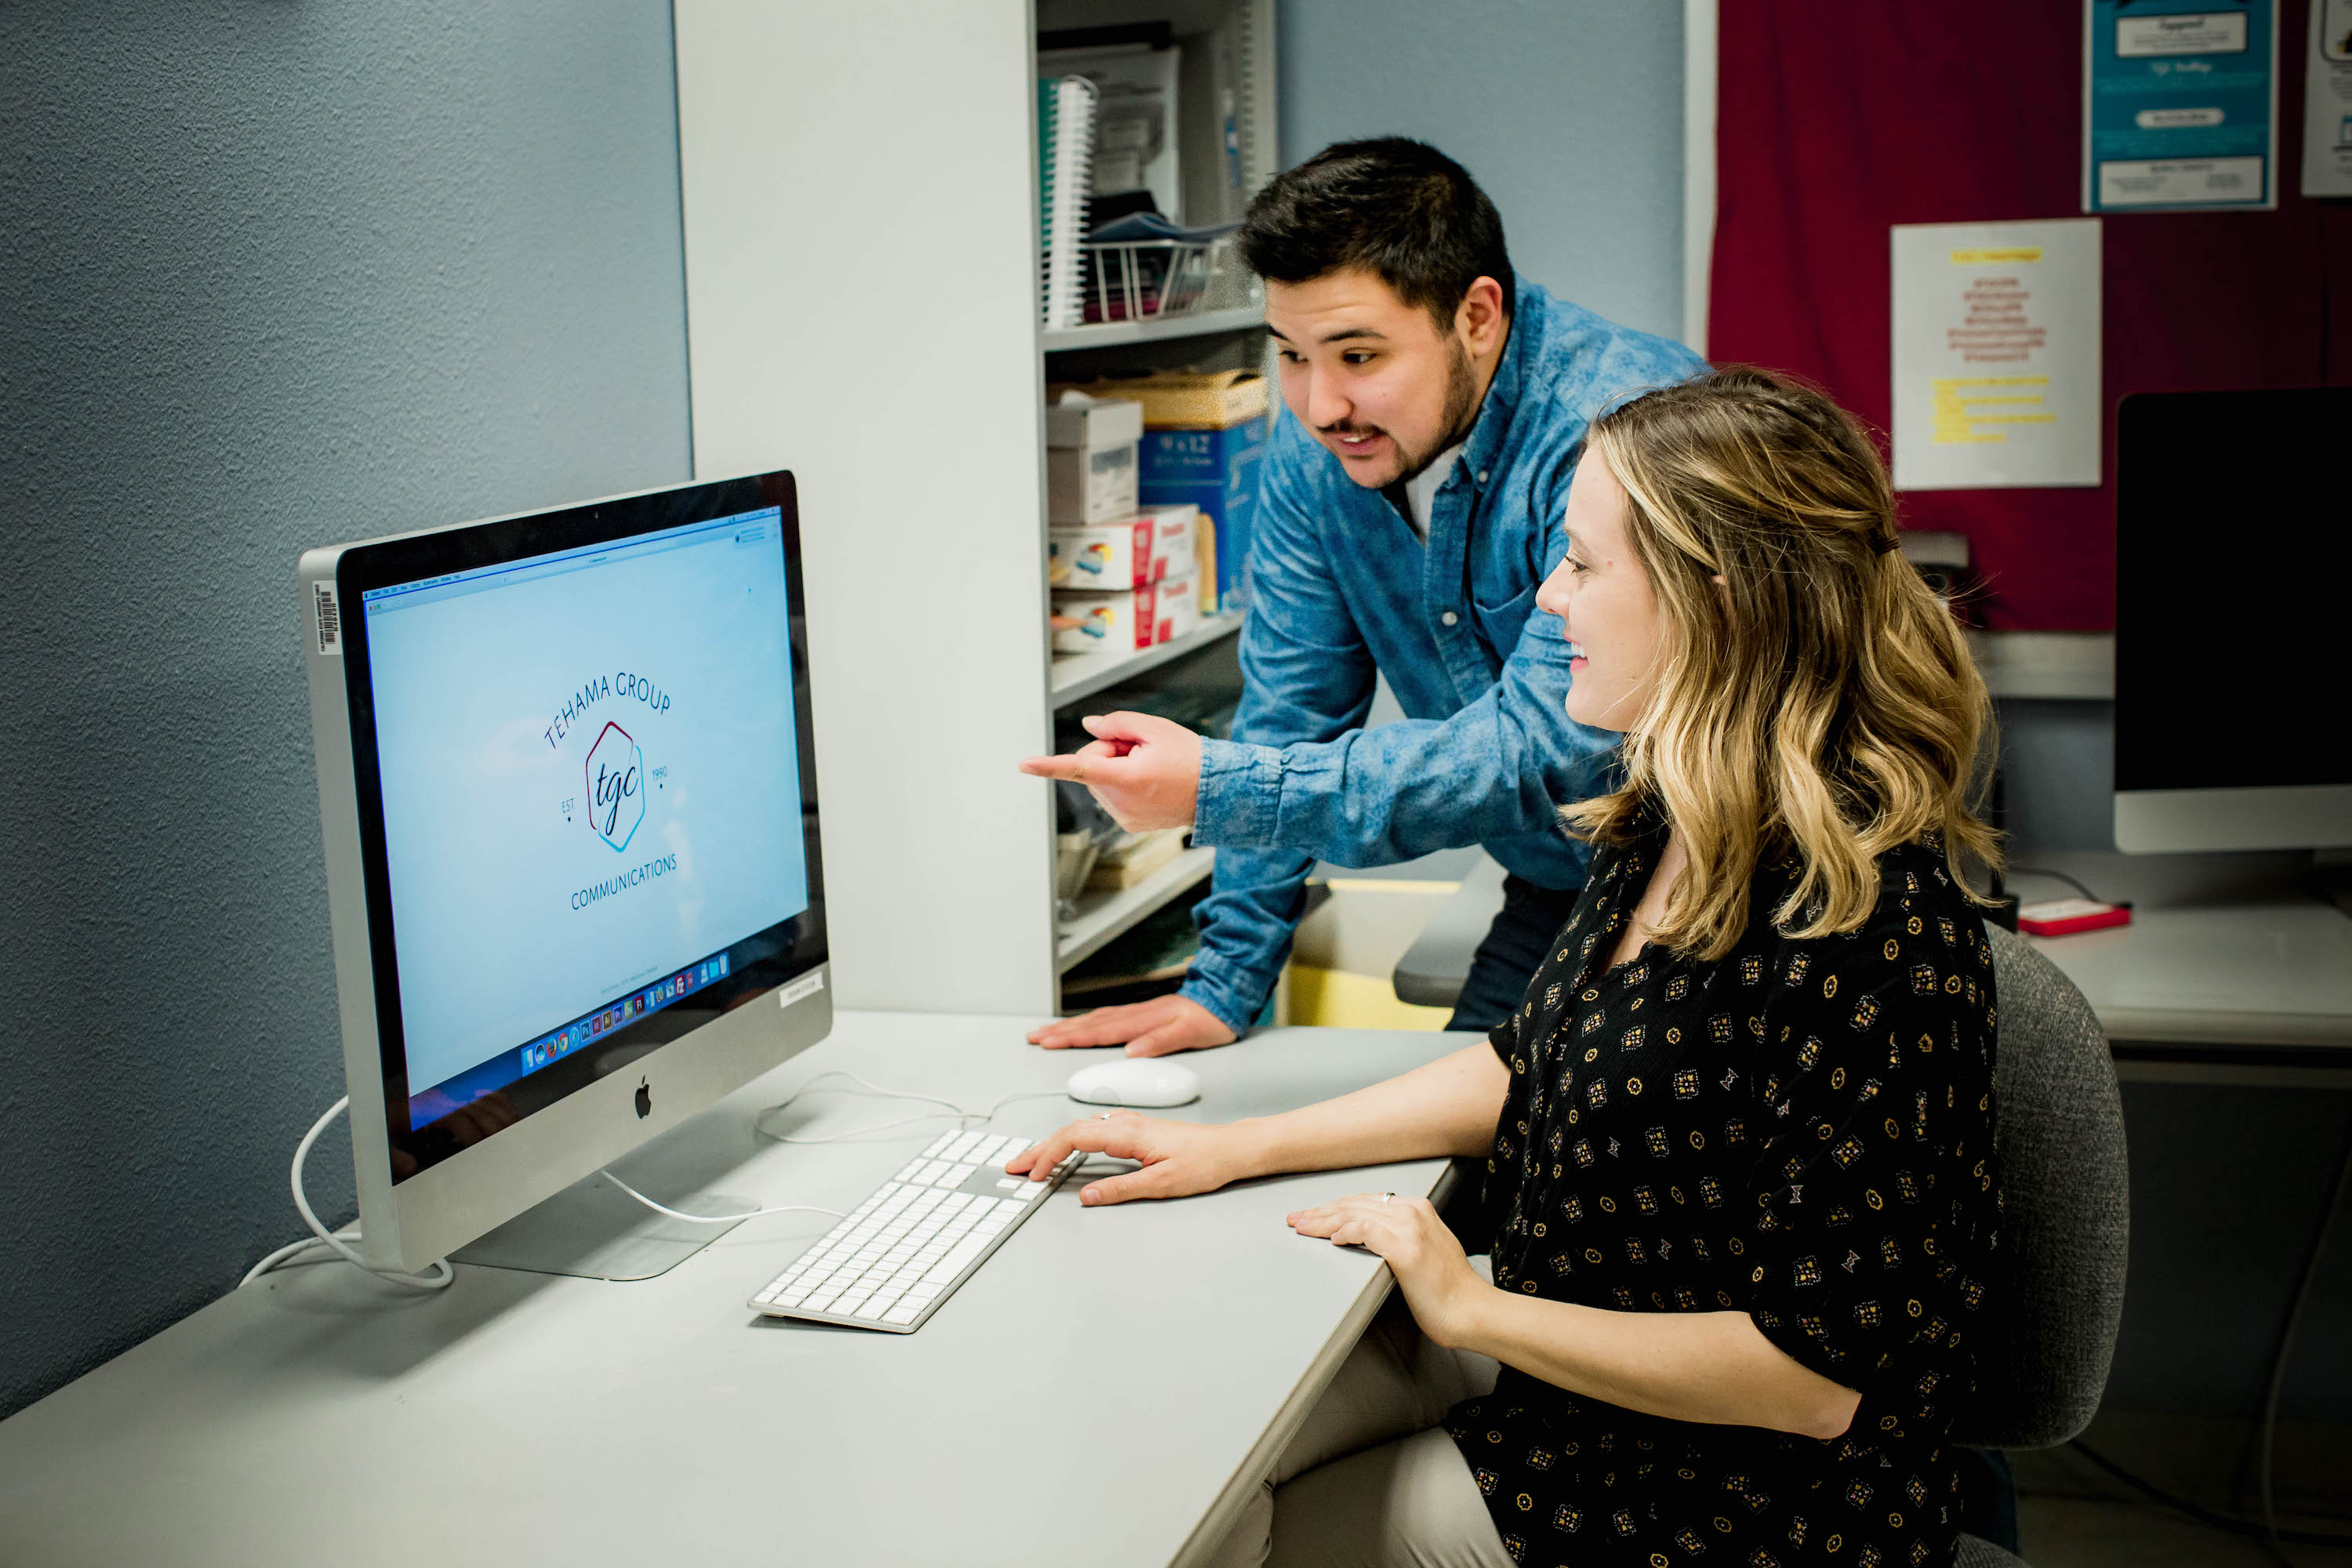 Jae Siqueiros and Kelsey Veith look at a T-shirt design on the computer screen smiling